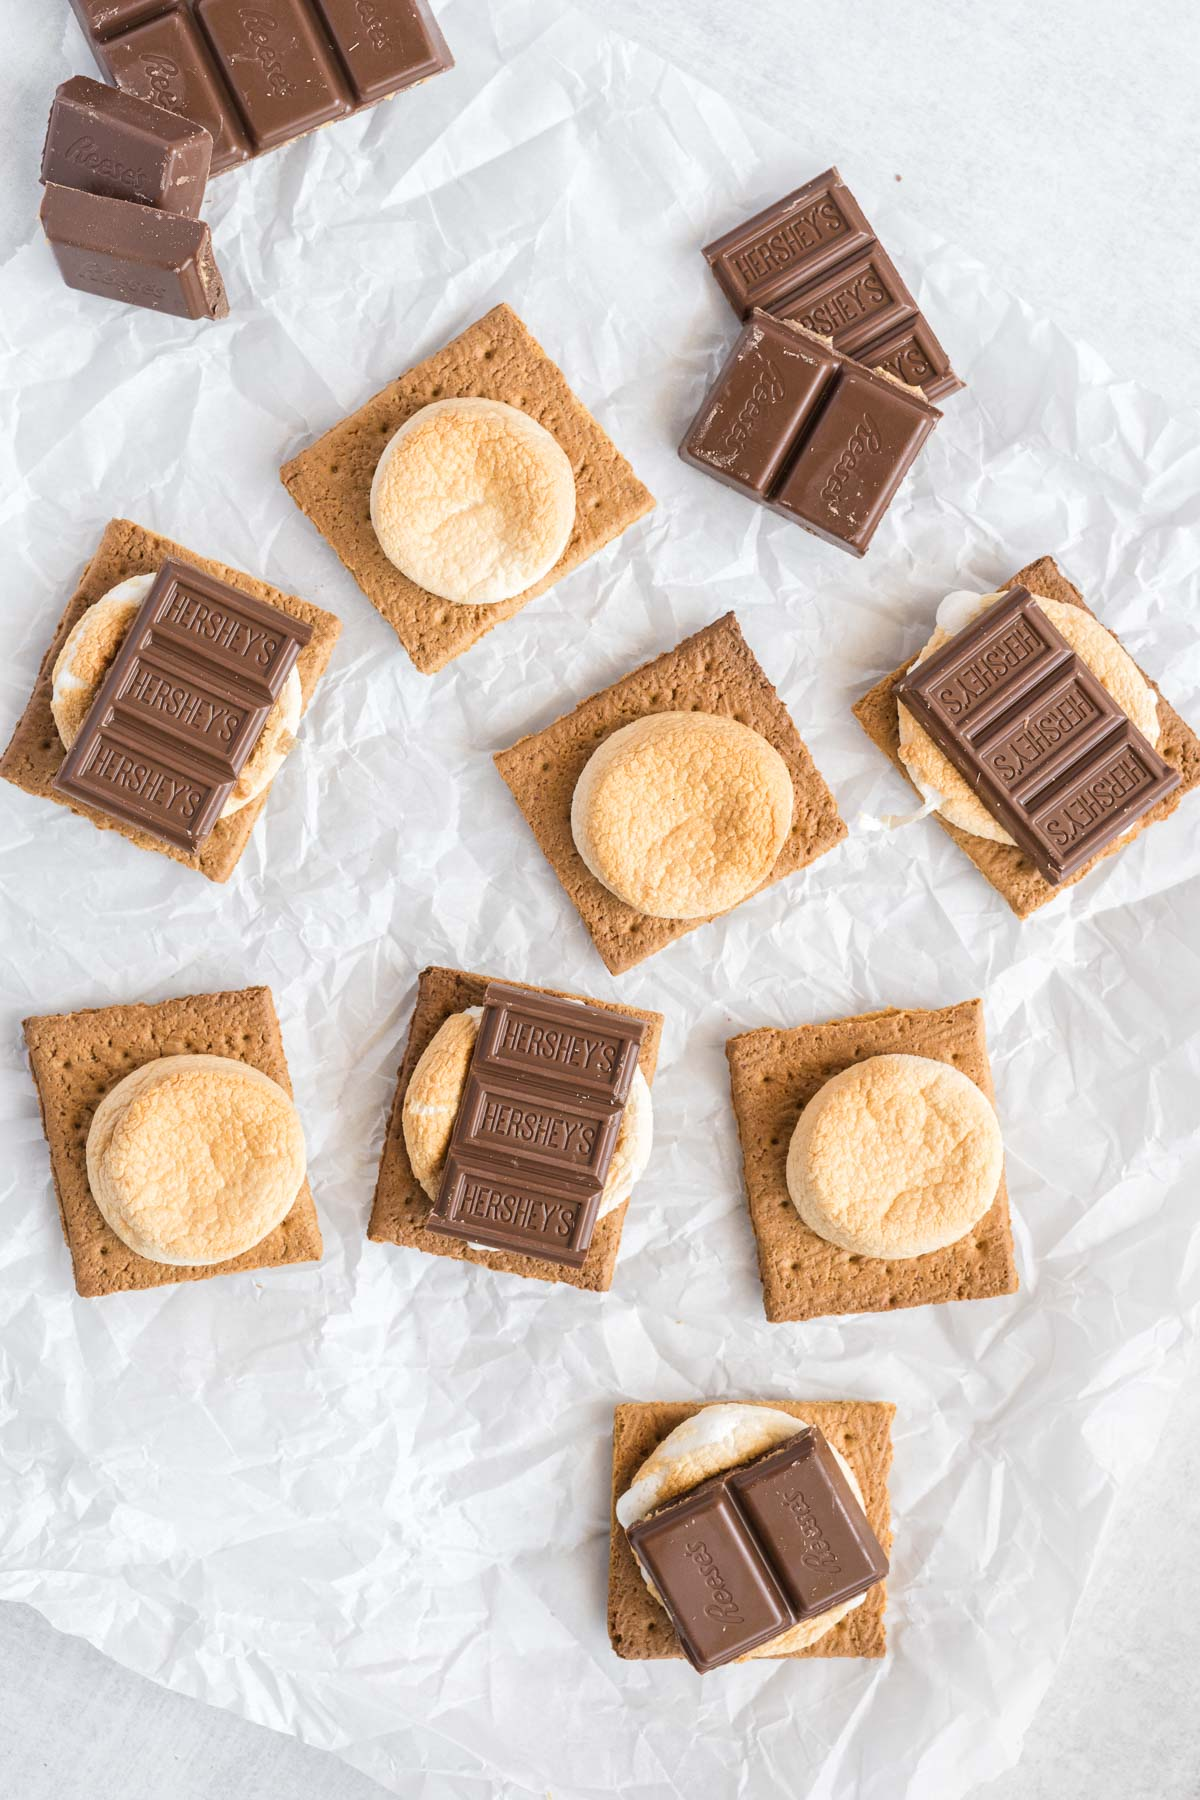 Graham cracker halves with toasted marshmallows and chocolate squares on half of them.